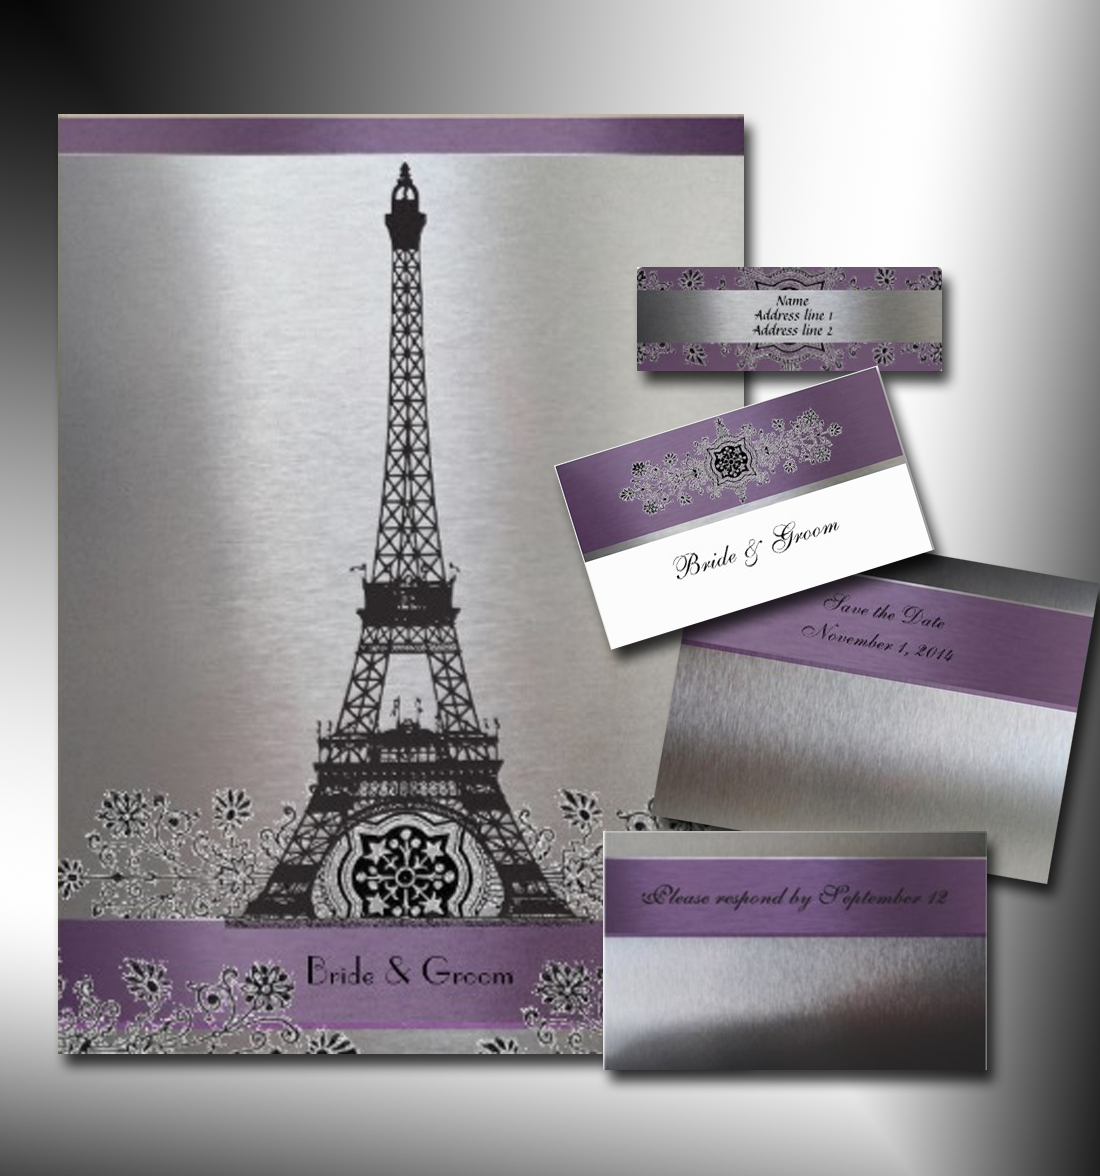 Eiffel Tower Invitation was great invitation layout